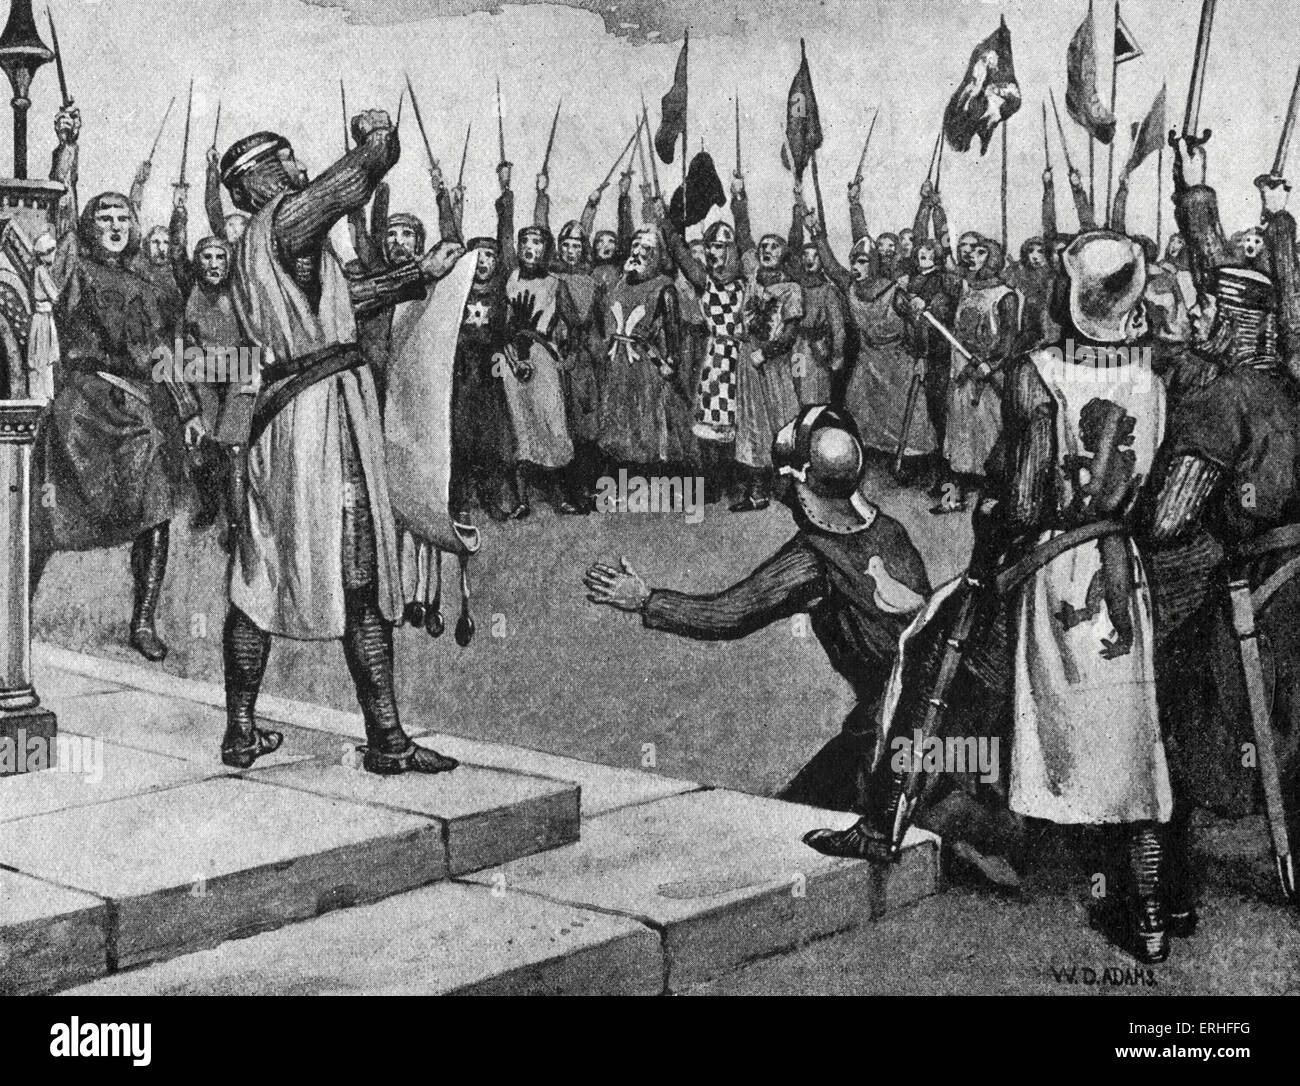 Magna Carta - illustration depicting 'the barons taking the oath at the giving of the Magna Charta' - 1215 - Stock Image